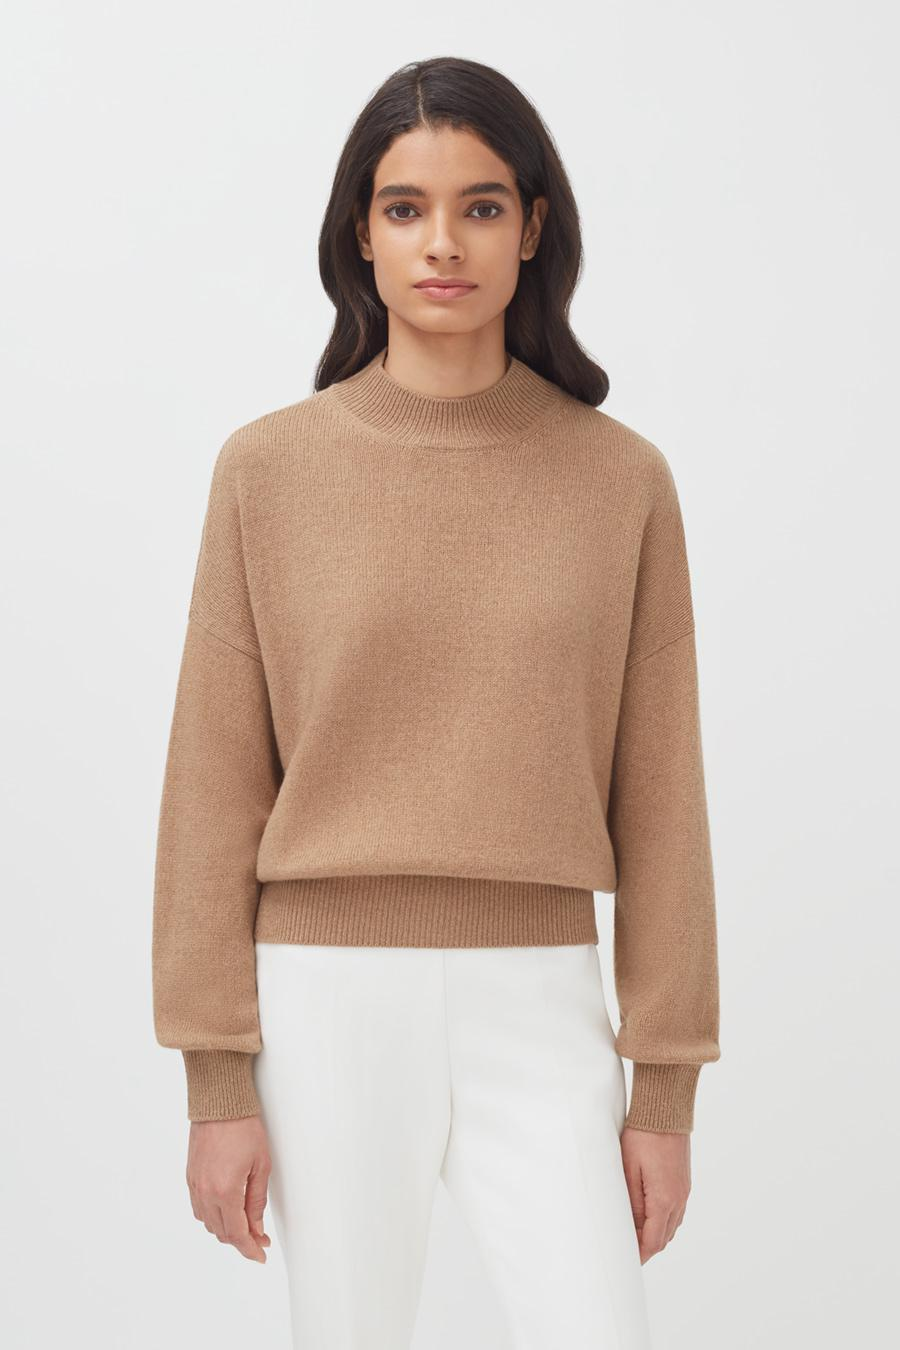 Women's Recycled Mock Neck Sweater in Camel | Size: 1